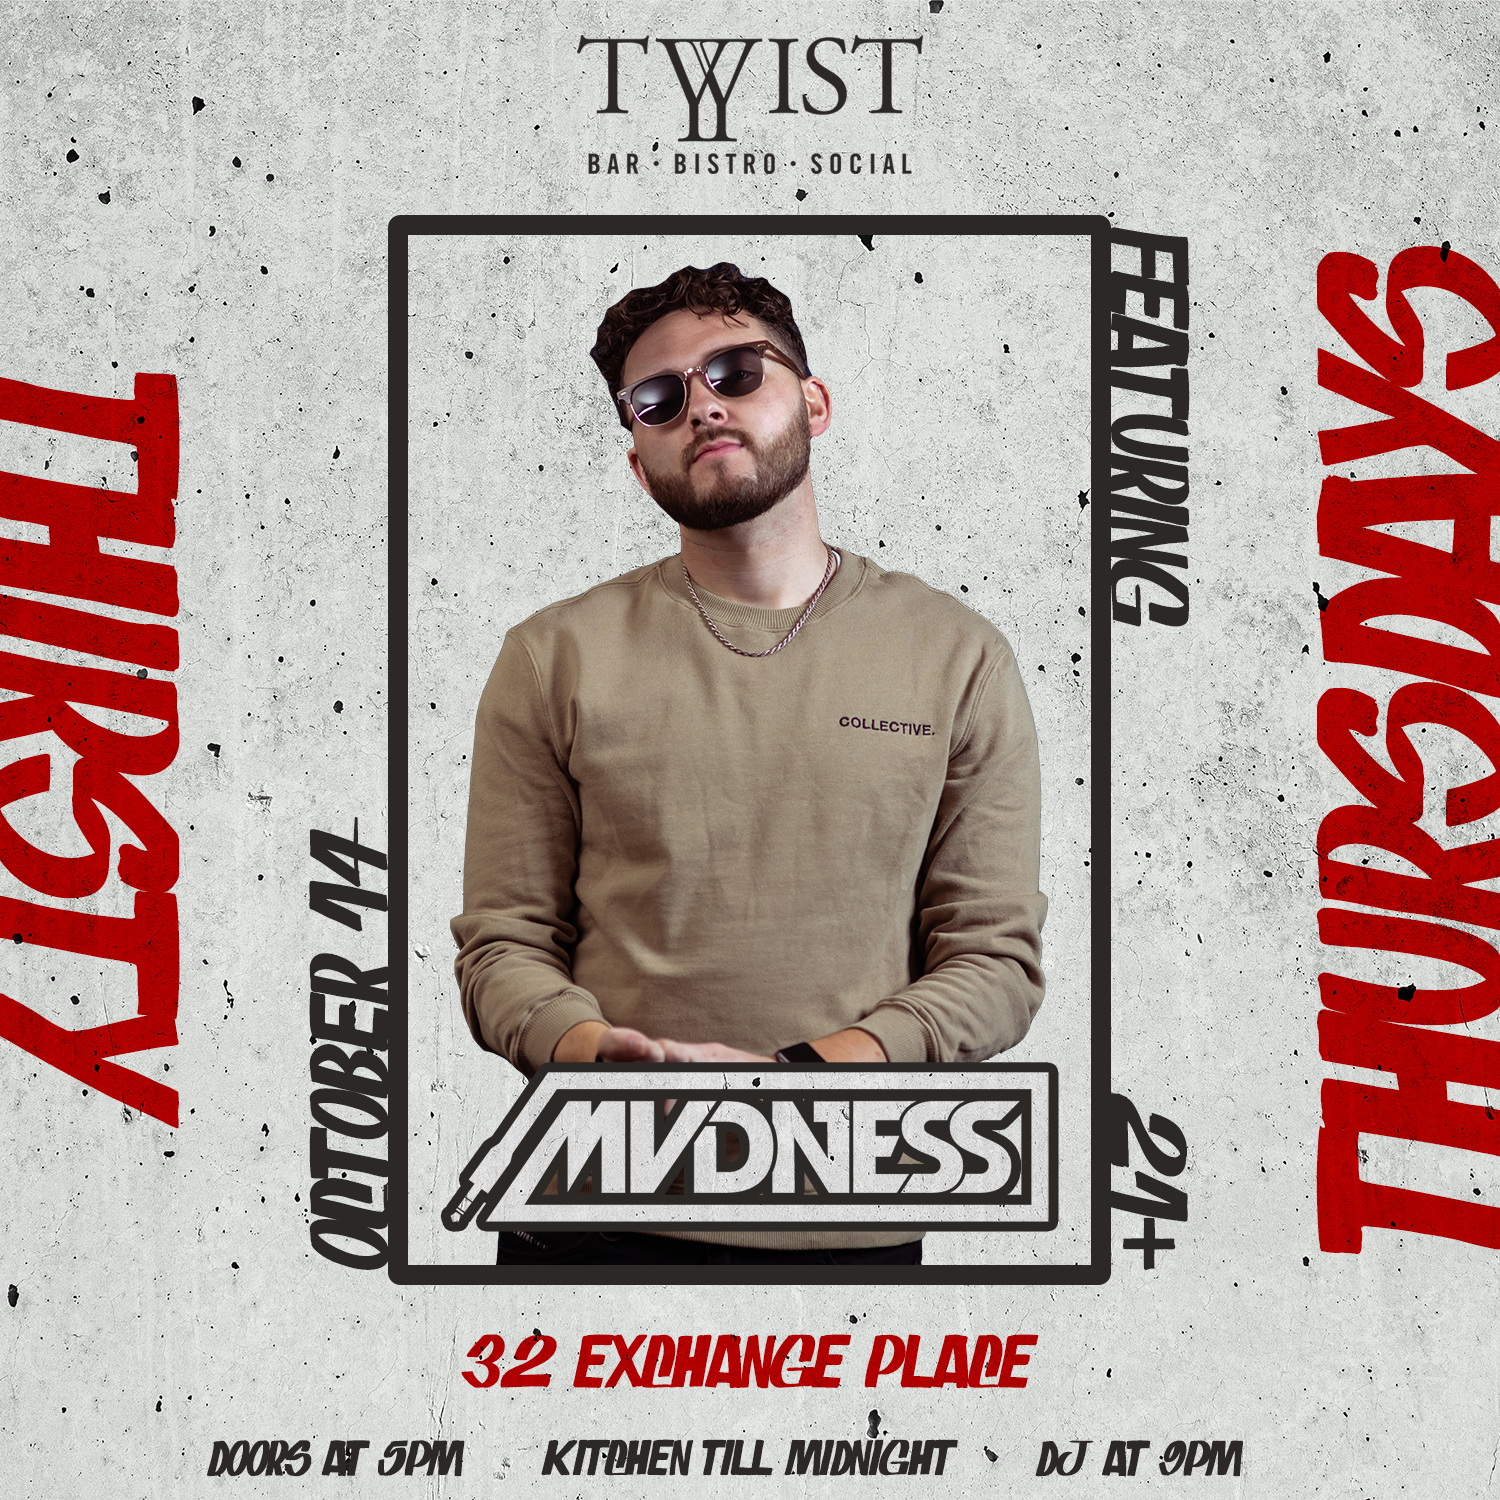 Event flyer for weekly Thursday night held at Twist Bar & Bistro every Thursday on 32 Exchance Place in Downtown Salt Lake City featuring live DJs, sports, and drink and food spcecials.